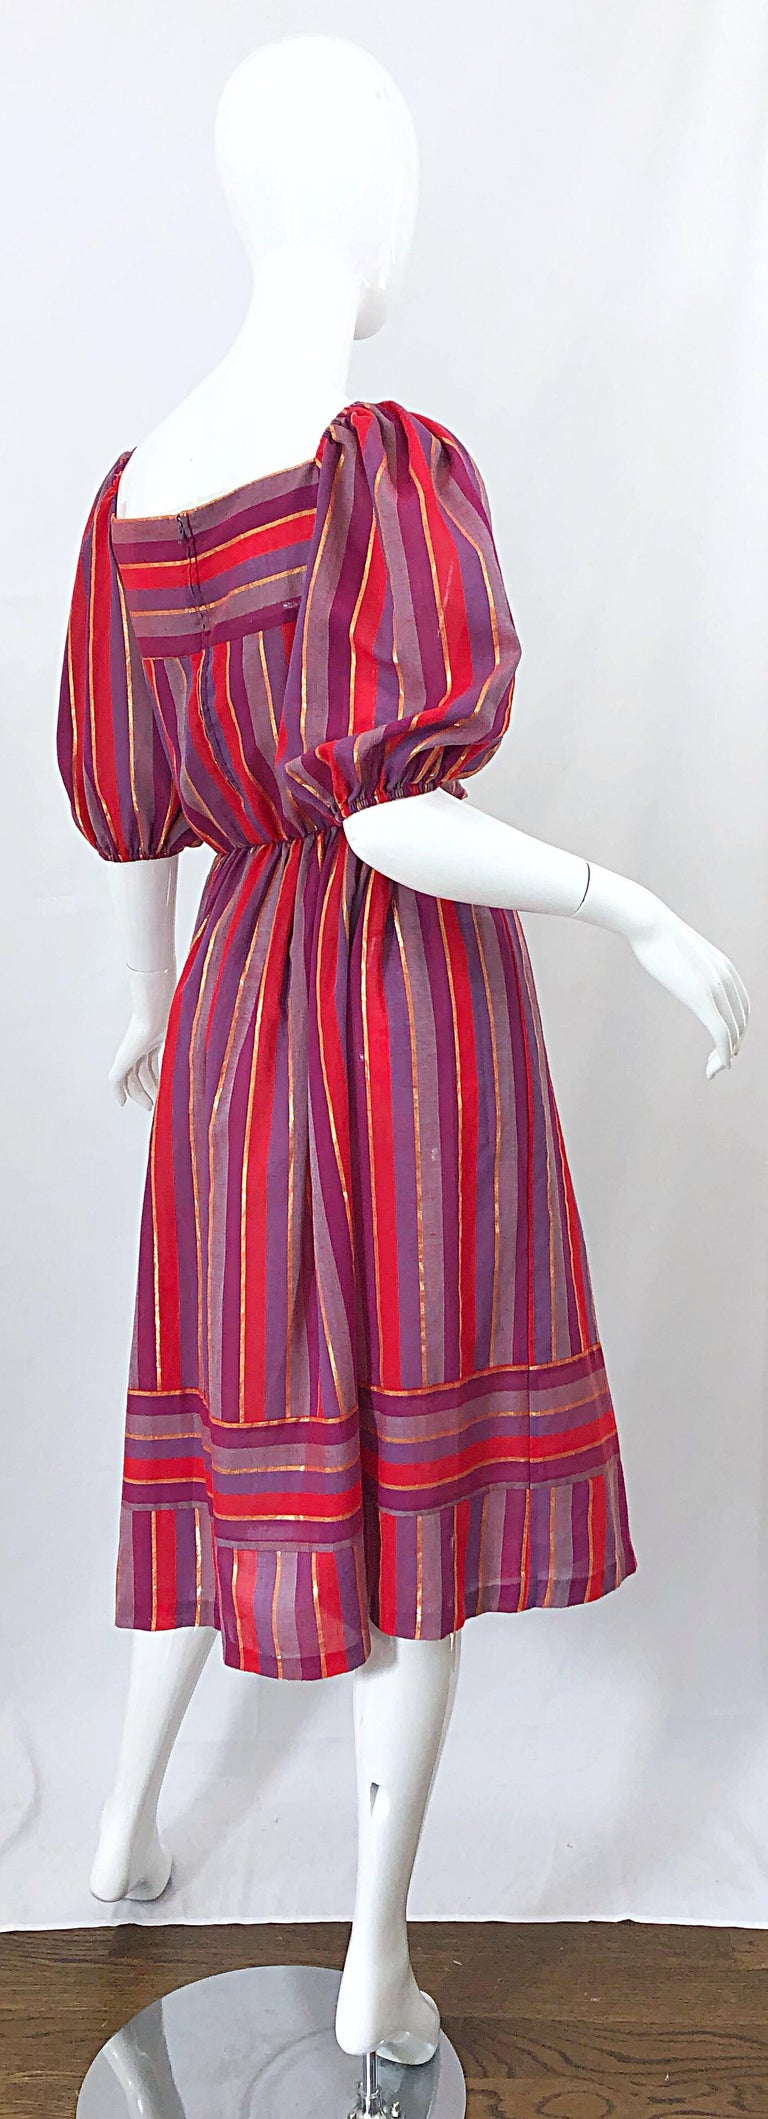 Women's 1970s Boho Chic Red + Purple + Gold Striped Cotton Voile 70s Vintage Dress For Sale